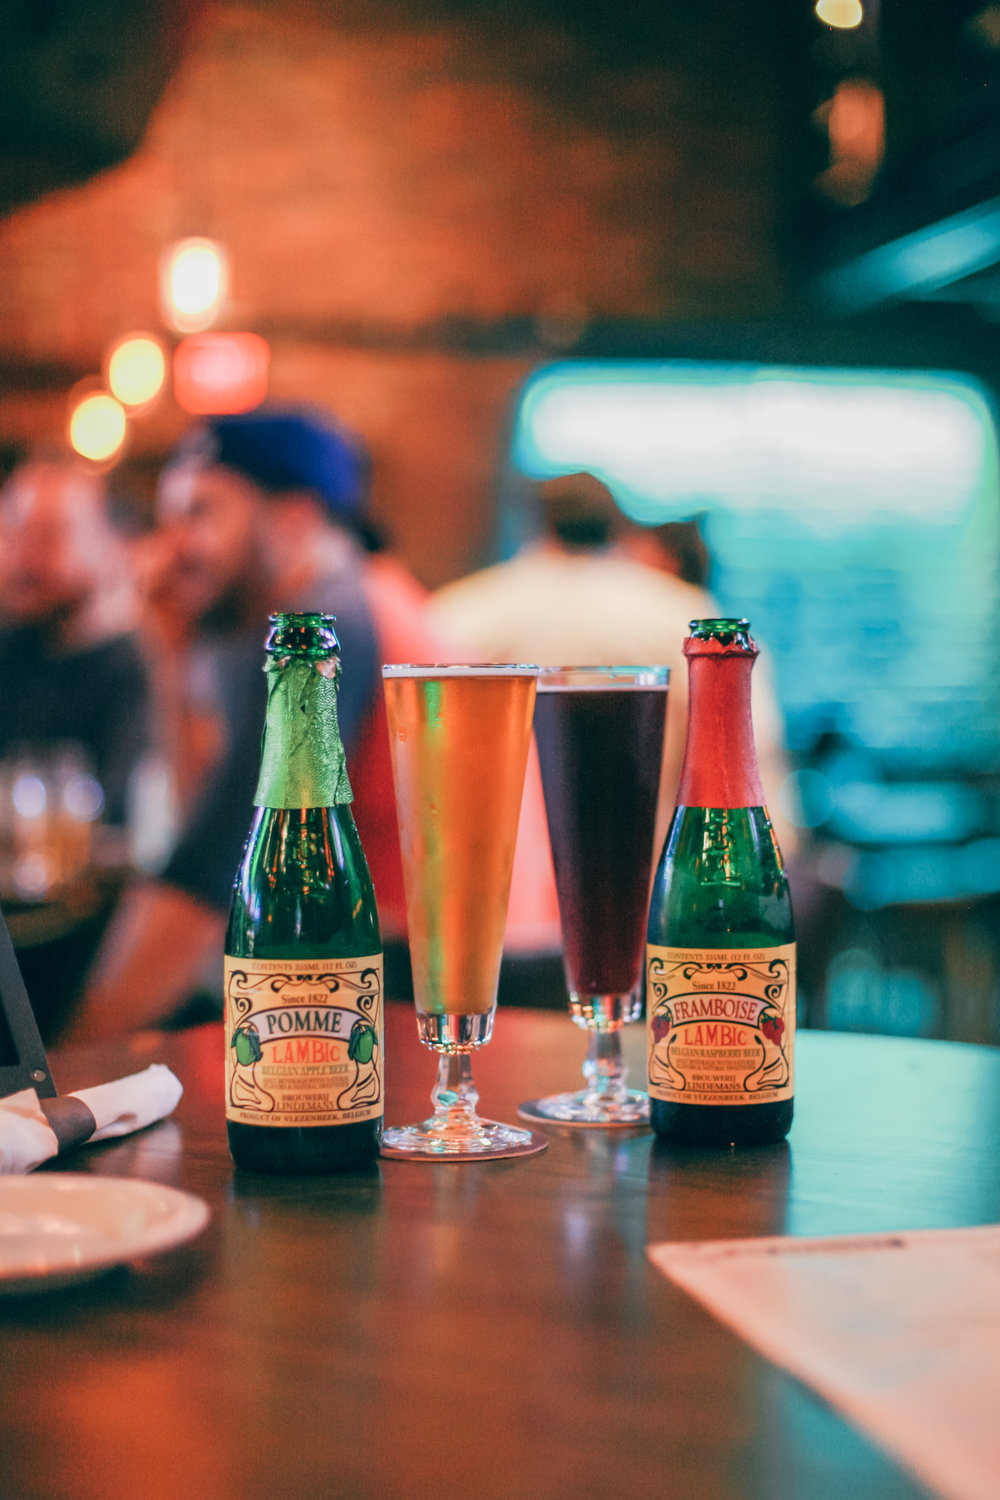 We opted for our favorite lambic beers this time around.